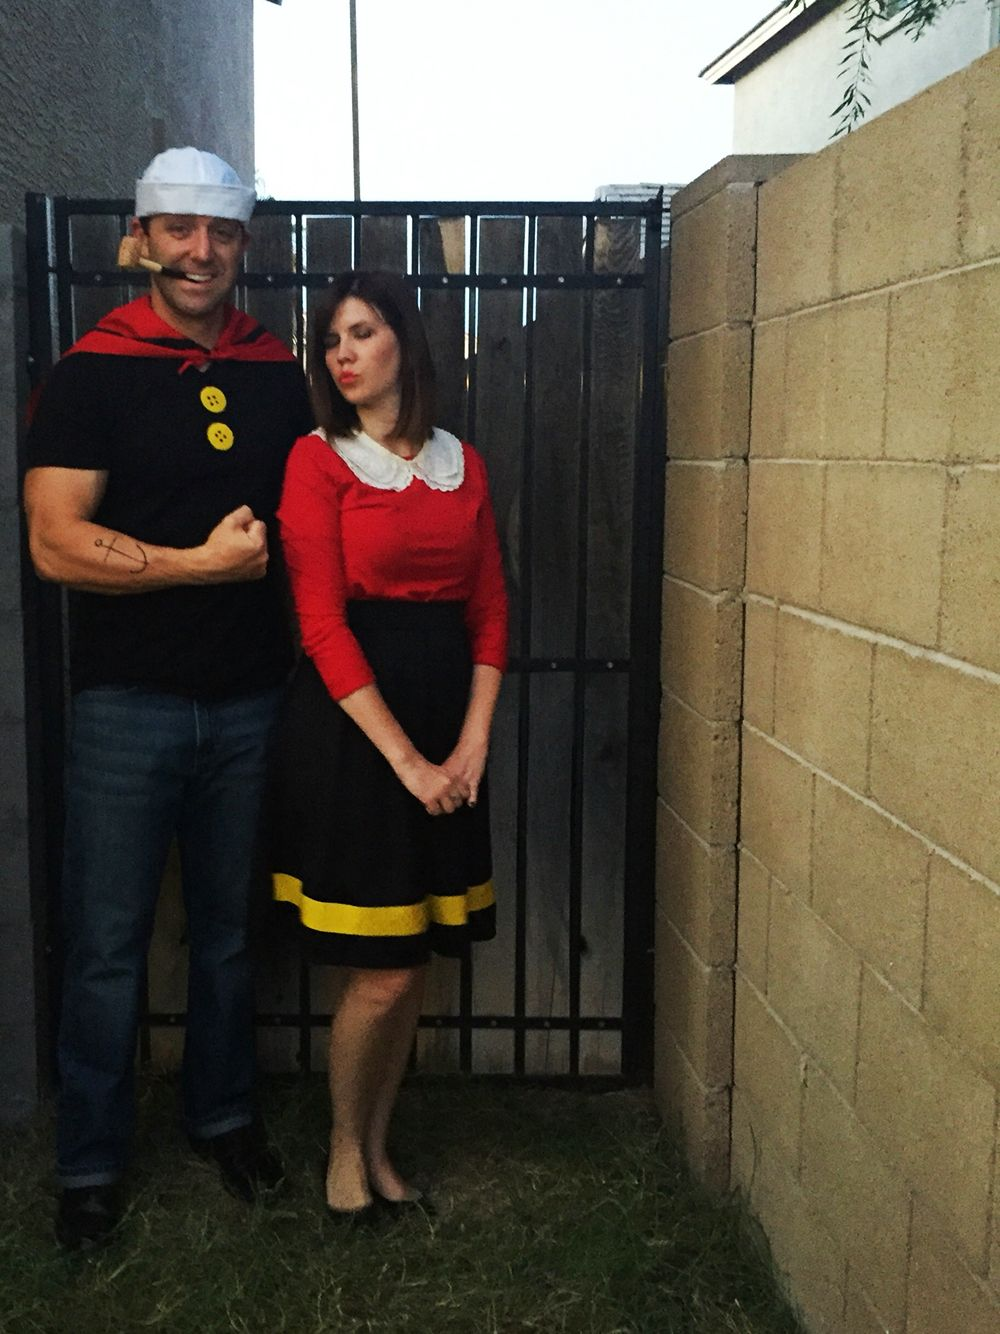 Diy Popeye And Olive Oyl Costume Autumn Awesome Ness